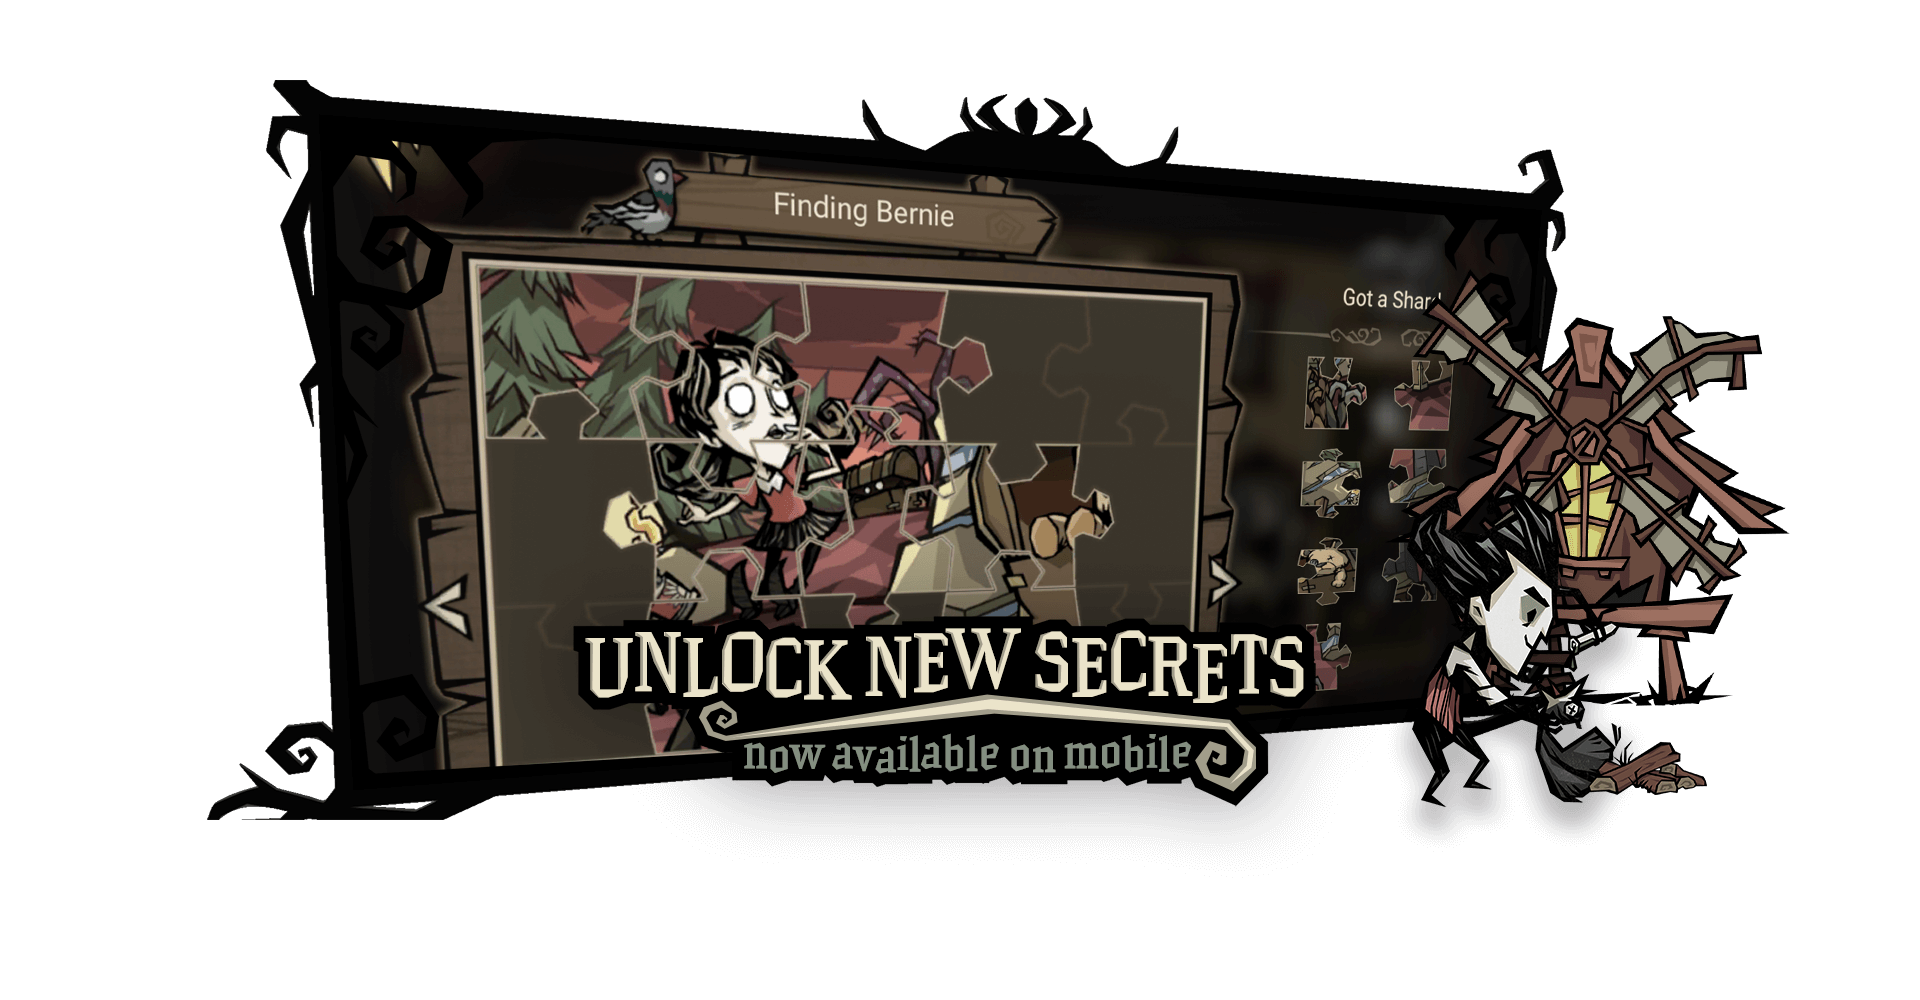 Don't starve unlock new secrets